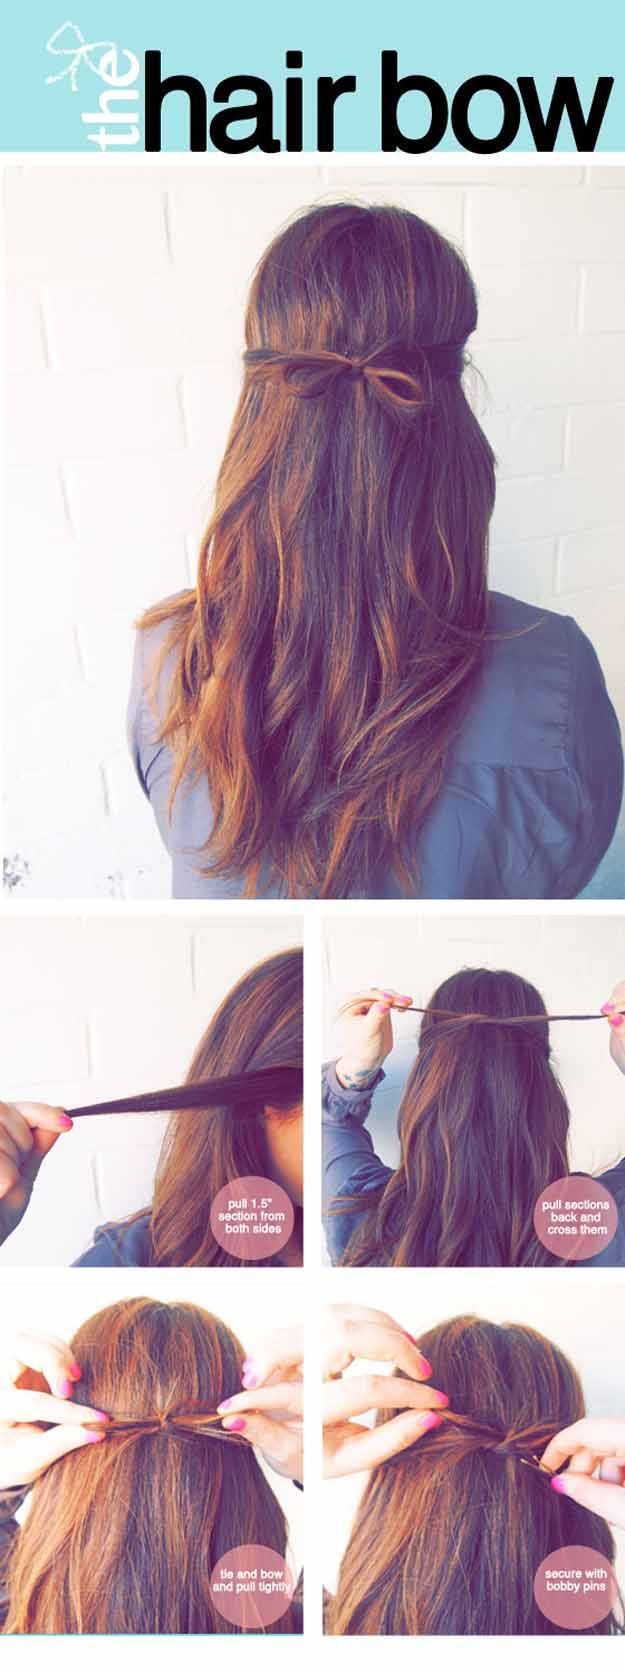 Quick and Easy Hairstyles for Straight Hair - The Tidy Hair Bow - Popular Haircu...